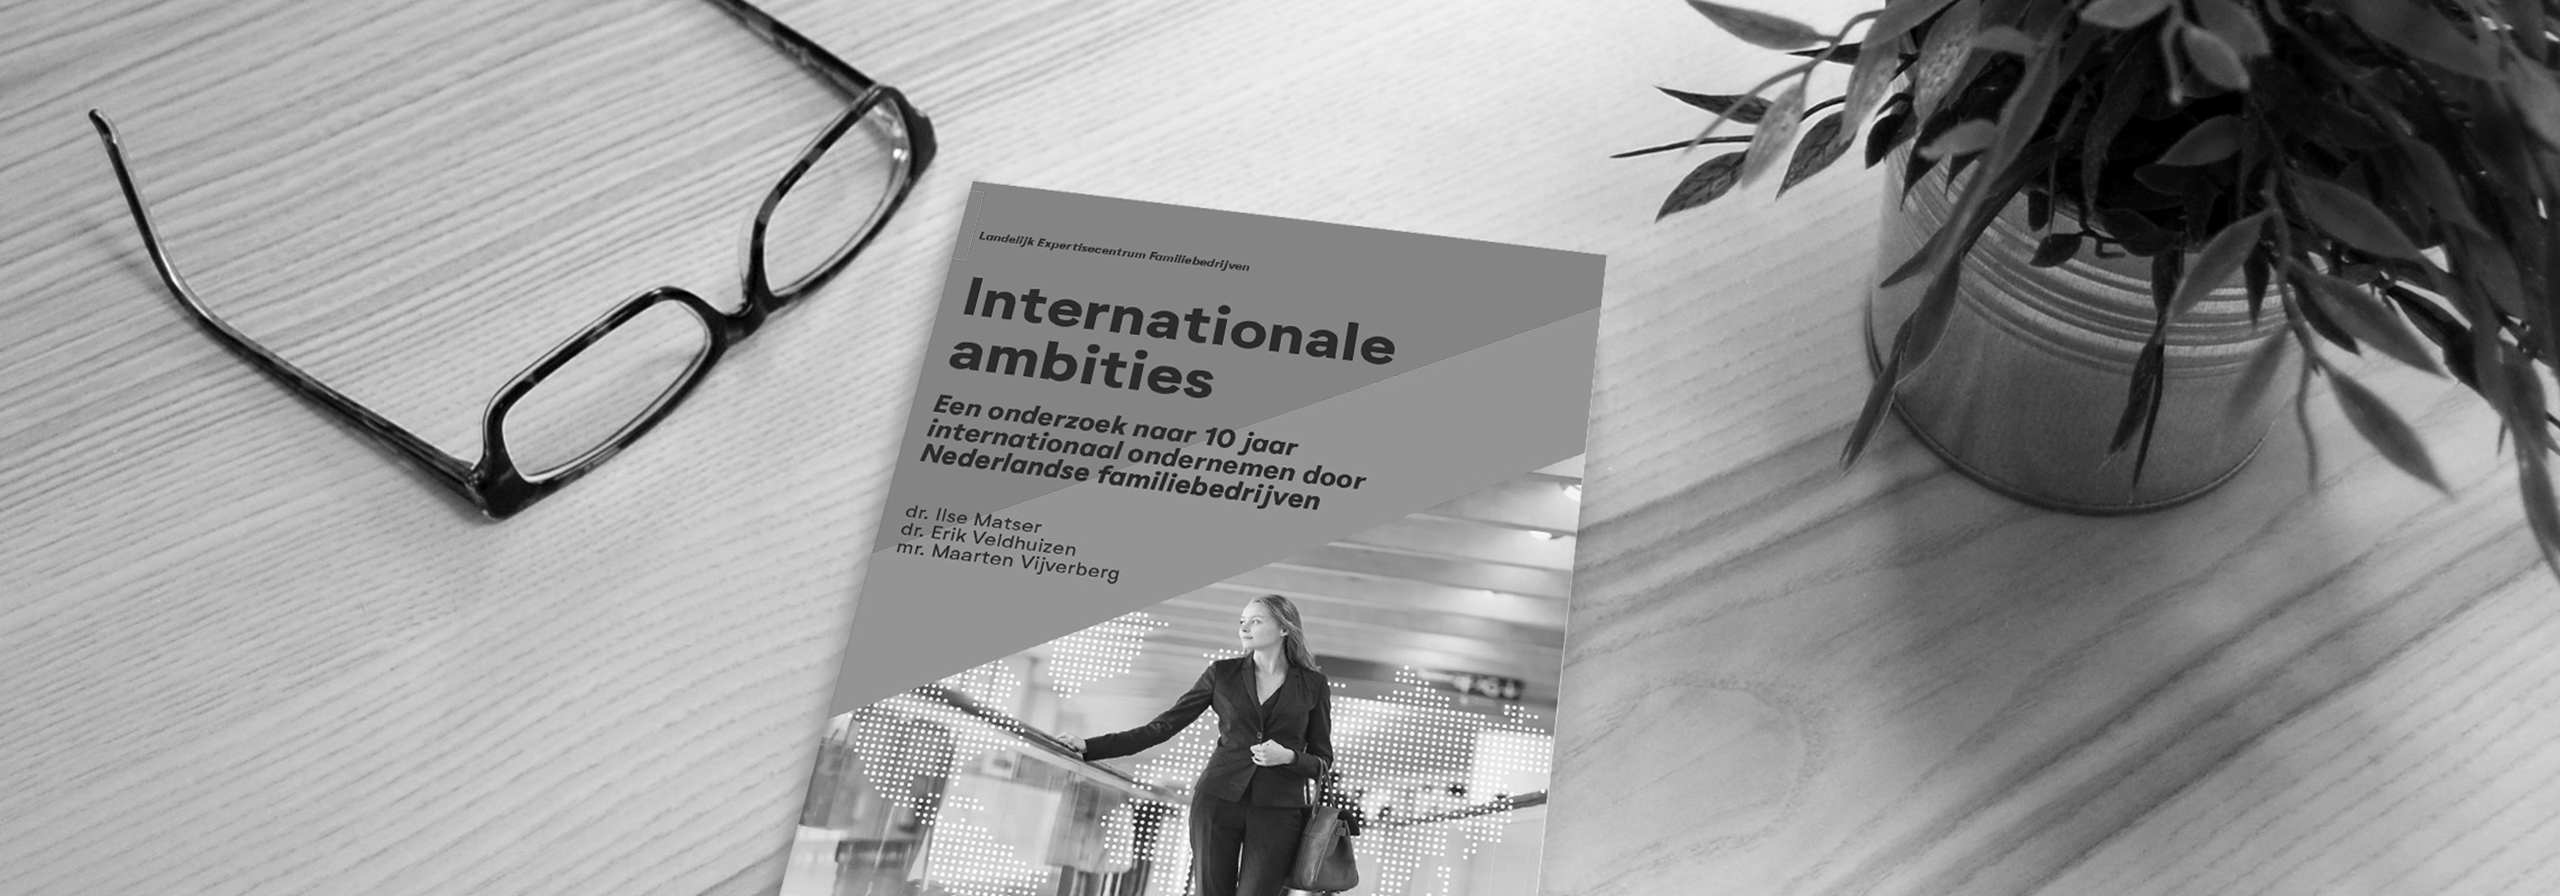 Internationale Ambities